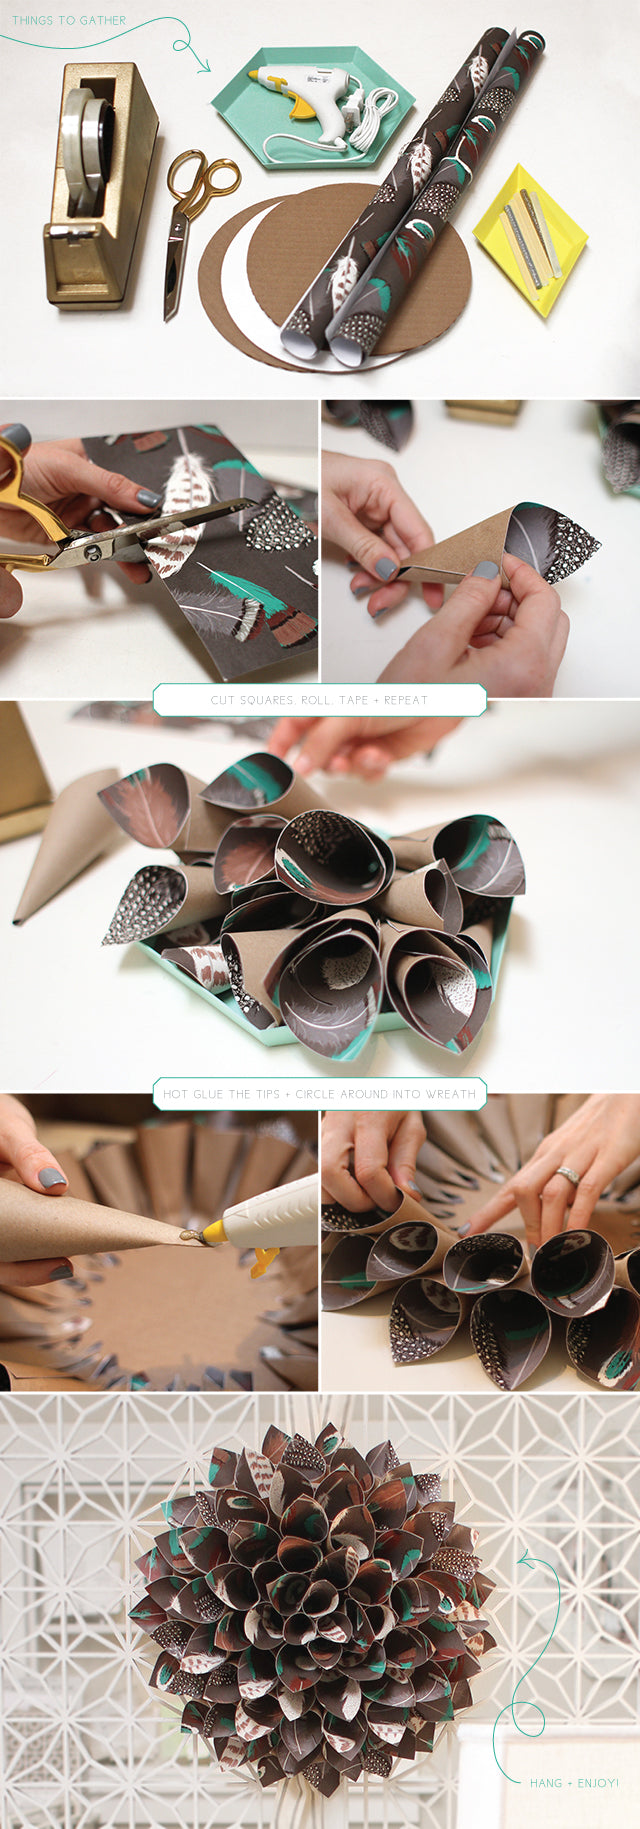 urbanic_parcelpost_project_fall_plume_wreath_diy_howto_steps_instructions1